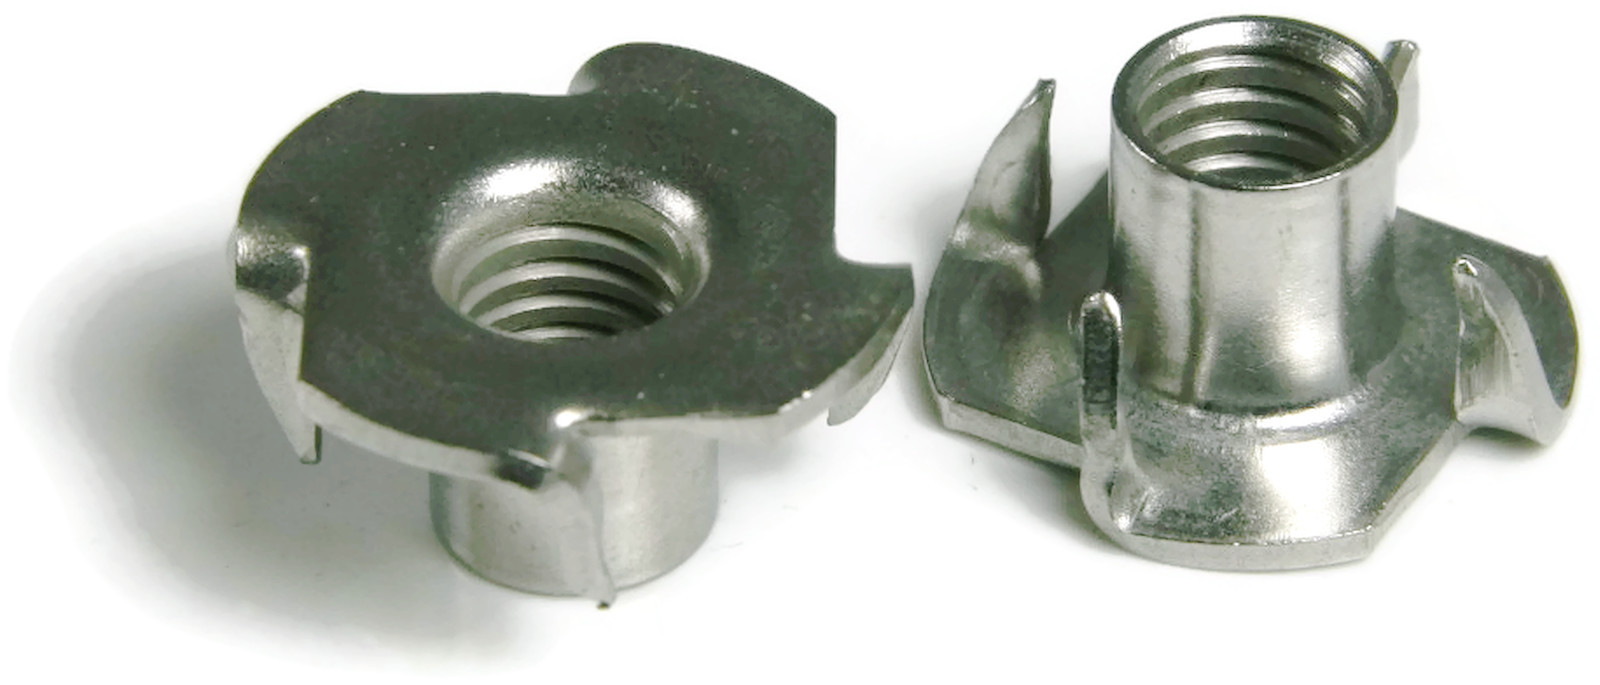 Stainless Steel T Nut Unc 3 Prong 8 32 X 1 4 Qty 25